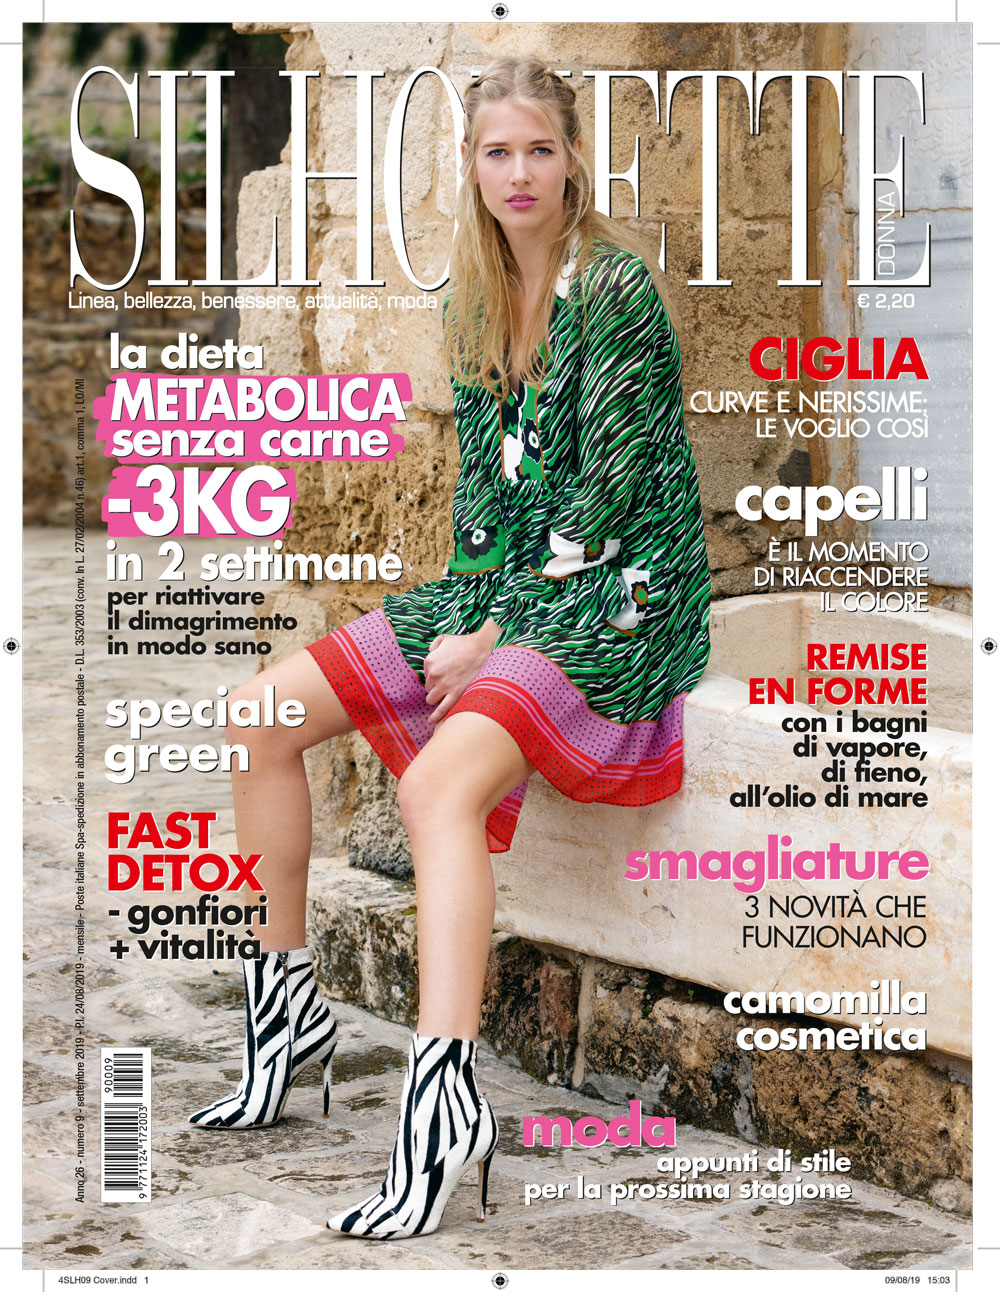 COVER-SLD9